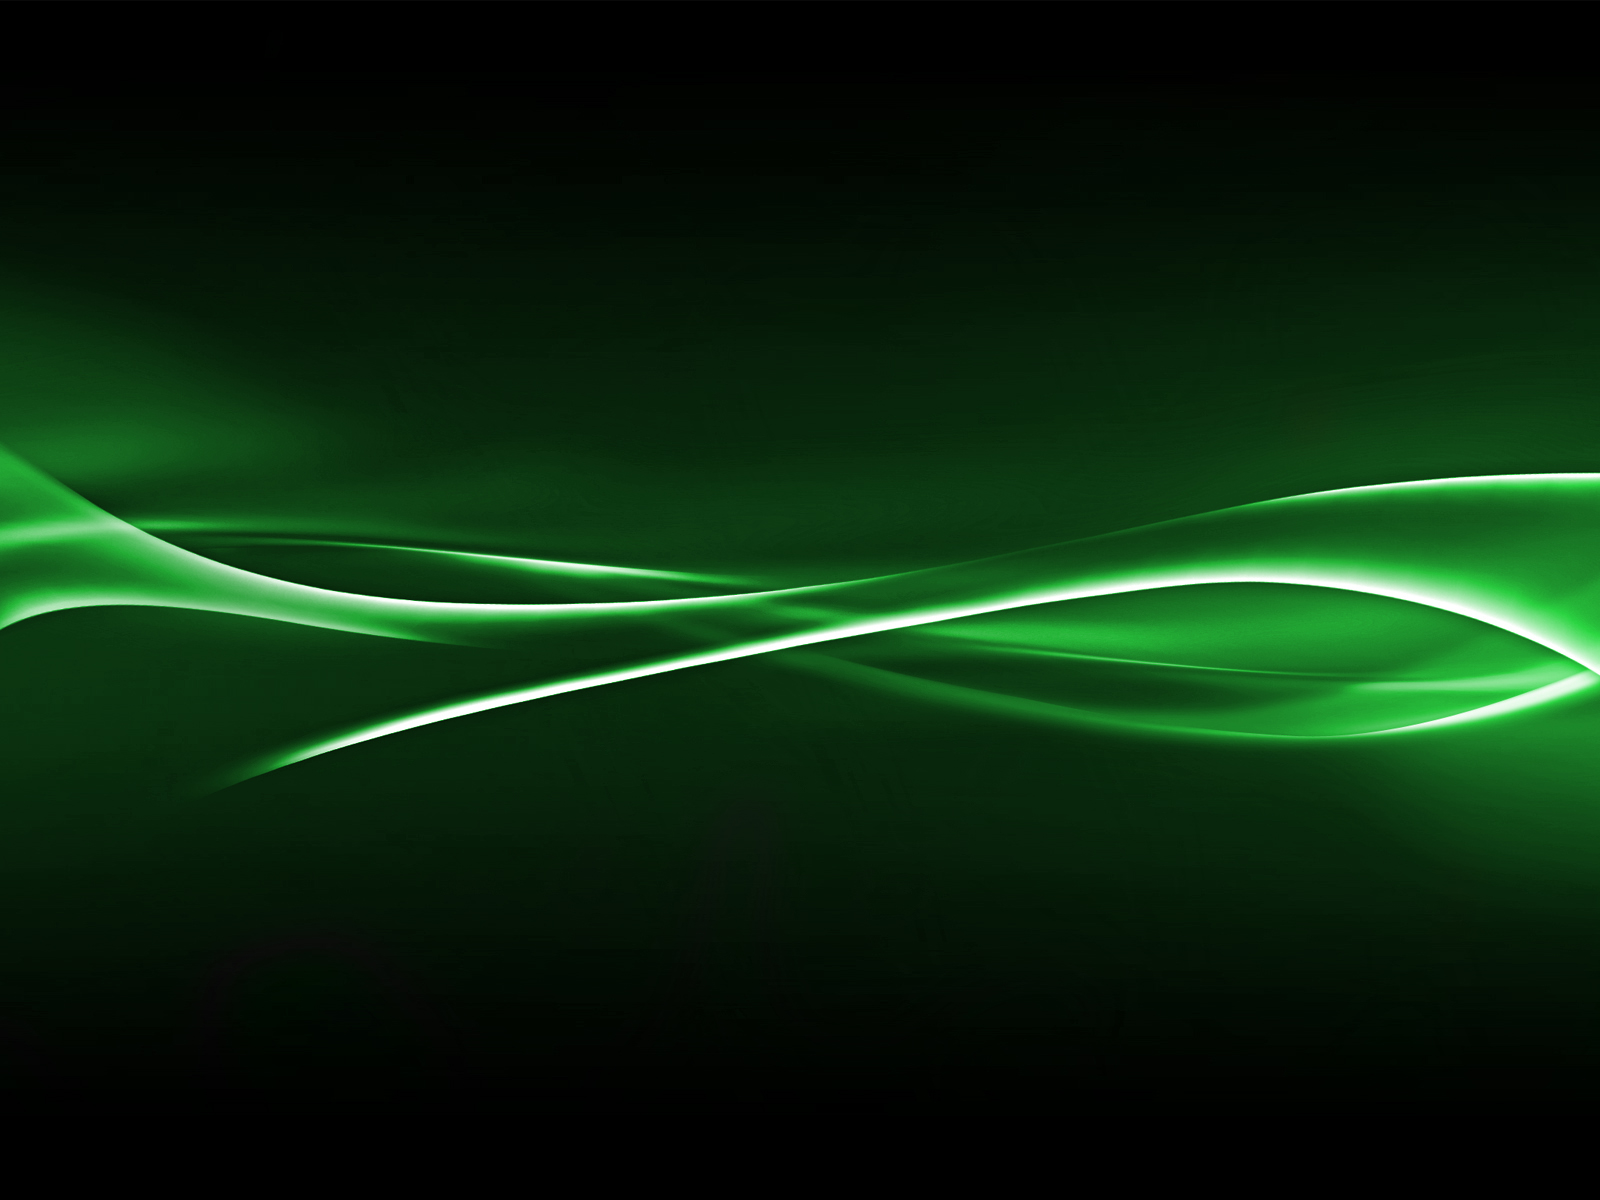 Mozilla Firefox Wallpaper 3d Wallpaper Stream Of Light Green Xp Yahhh